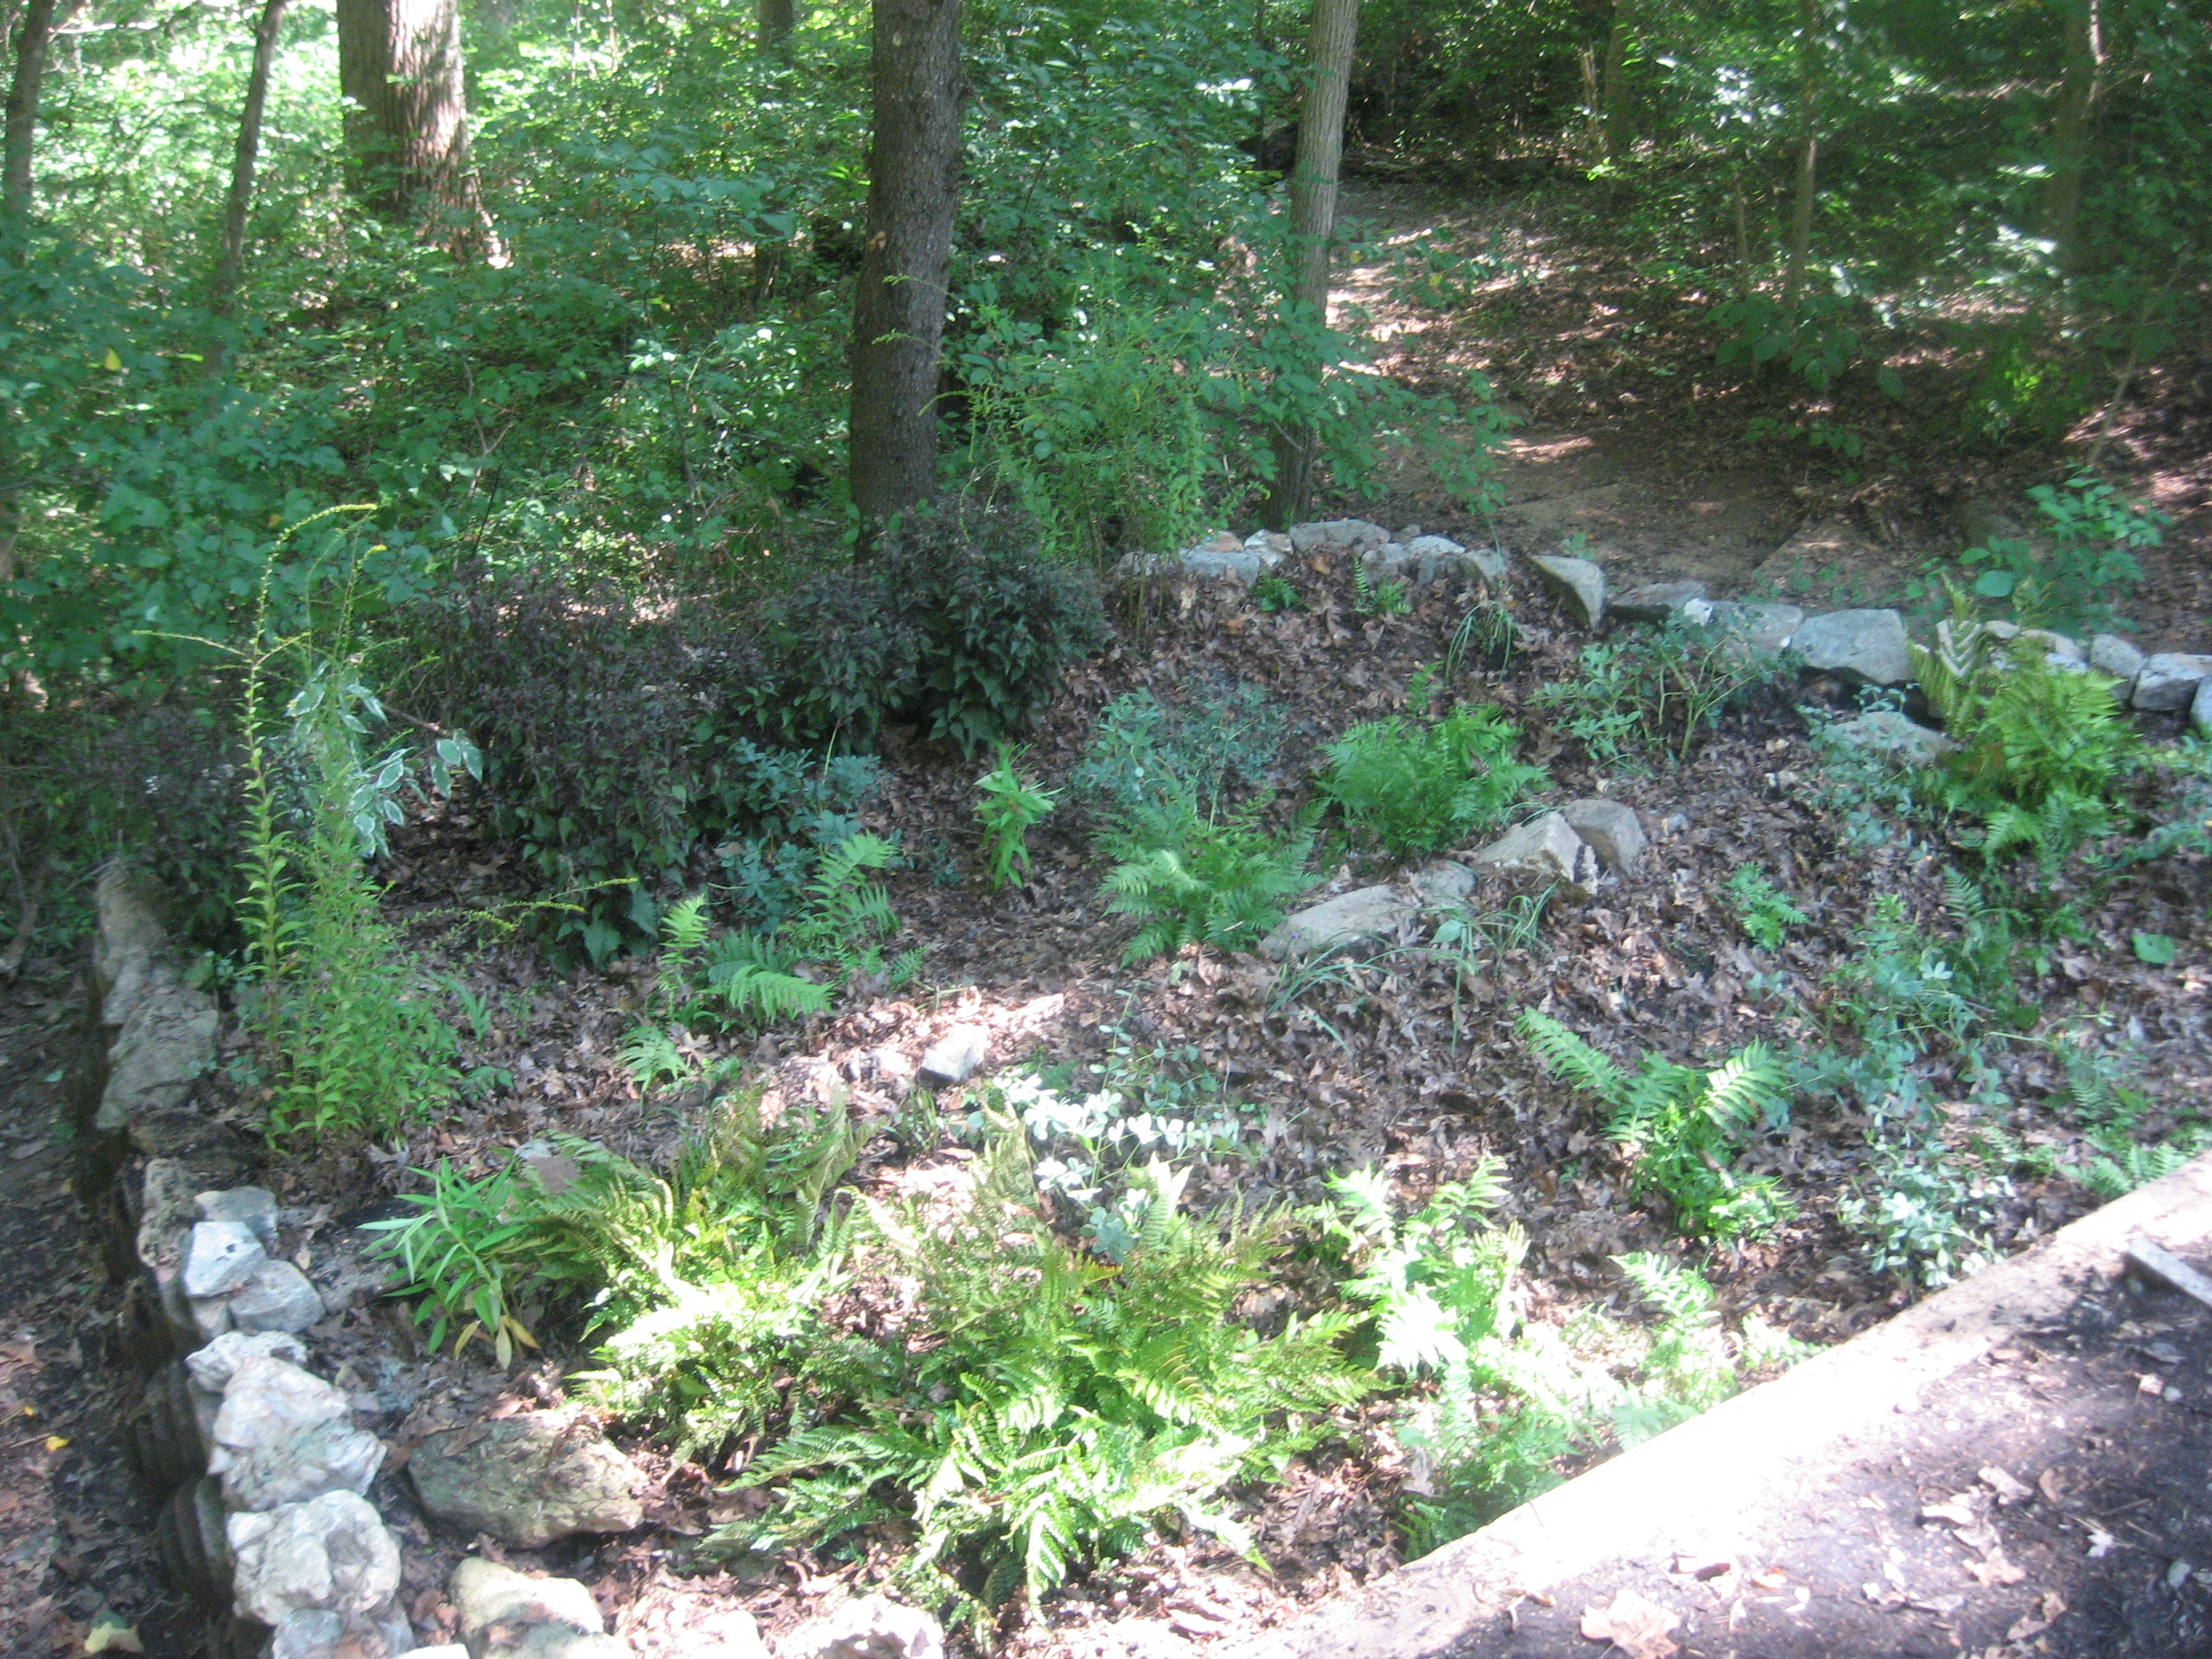 This eagle project entailed the building of two, 6'x17' rain gardens, one flowing into the next in order to filter runoff before reaching a nearby river. The gardens consisted of a concrete retaining wall, and over 100 native plant species. The project took a total of 255 hours to complete over a two-month period.